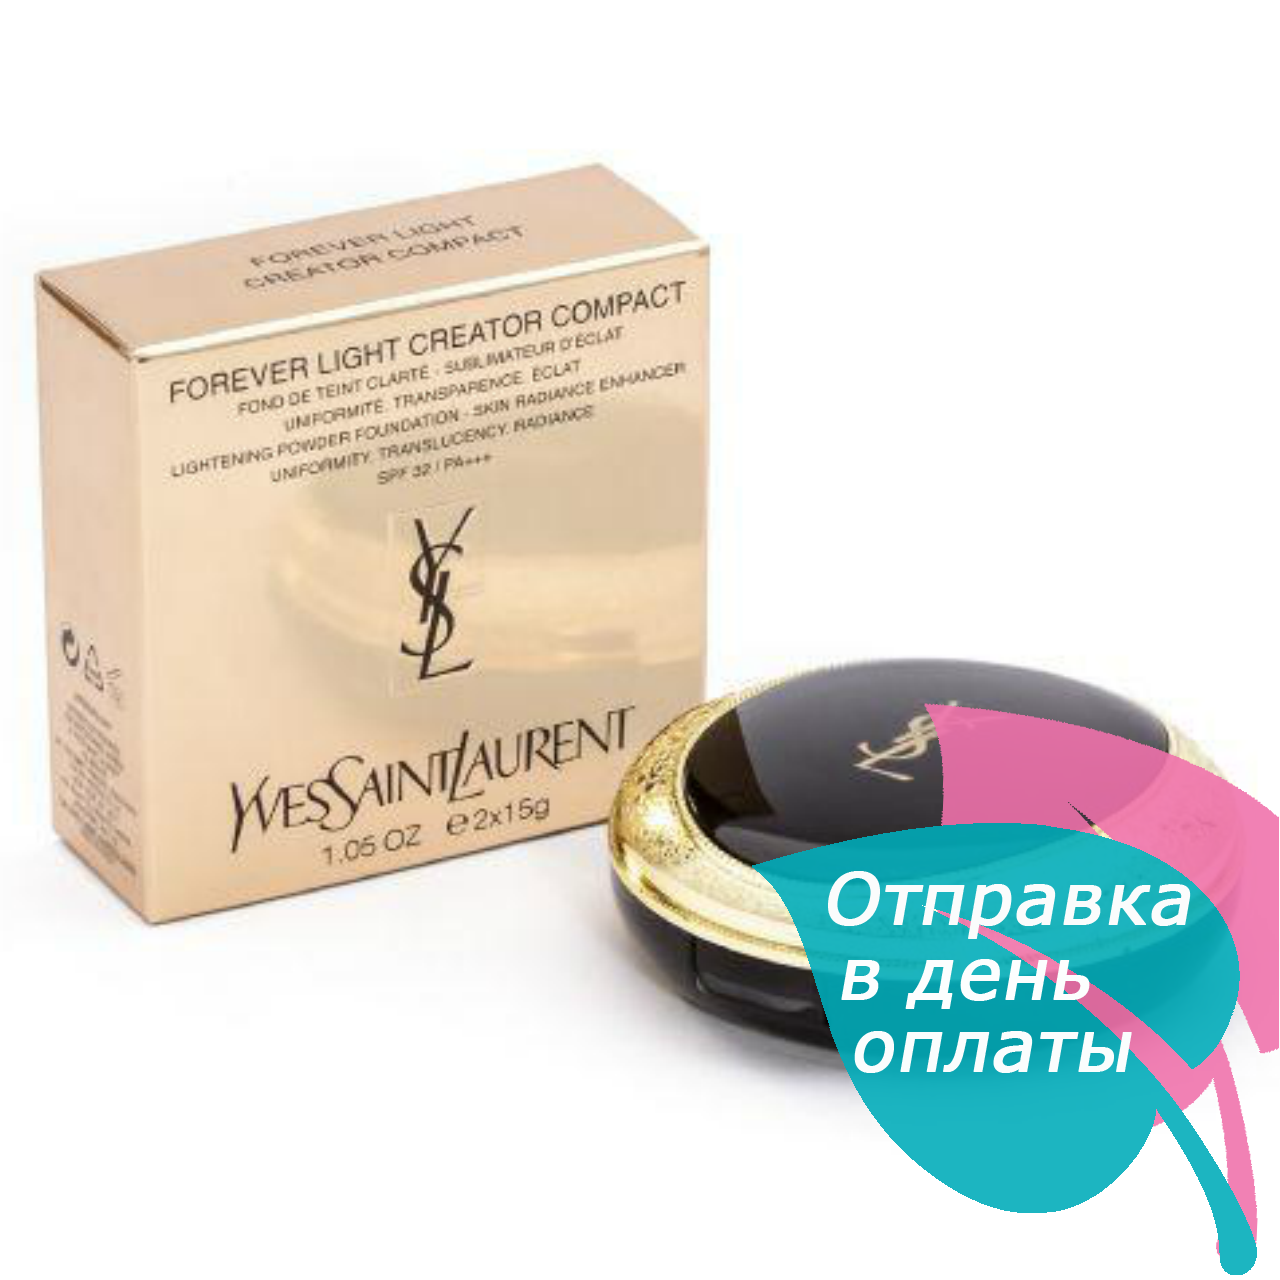 Пудра Yves Saint Laurent 2 в 1 Forever Light ( тон №3)  продажа ... 03cf592f6e7